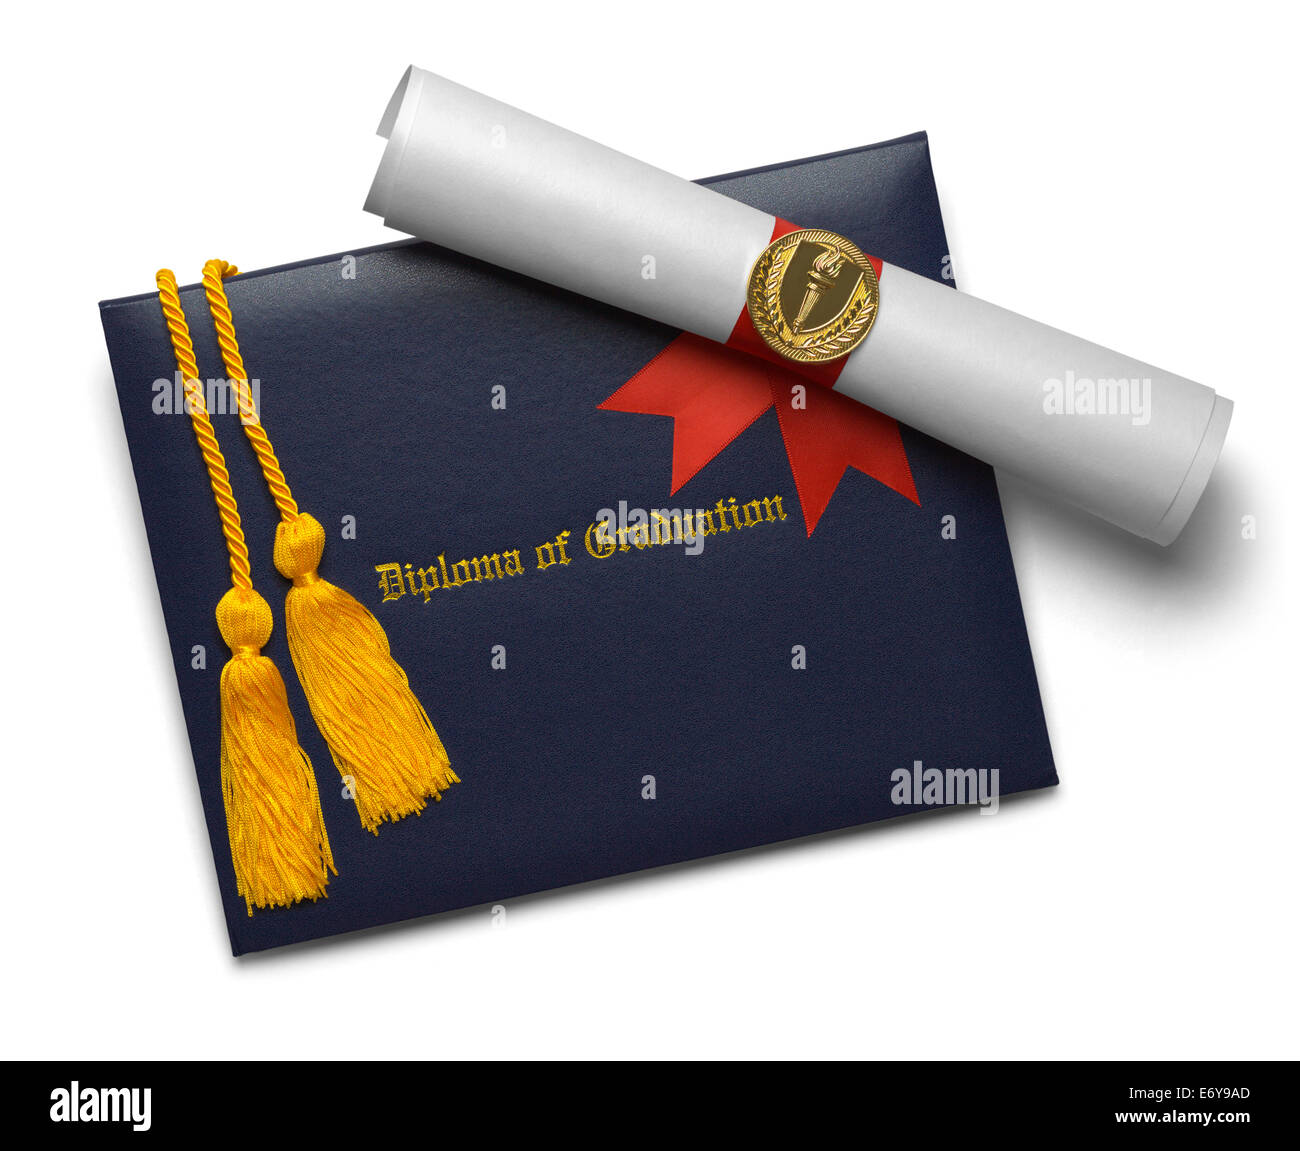 Blue Diploma of Graduation Cover with Degree Scroll and Torch Medal with Honor Cords Isolated on White Background. - Stock Image